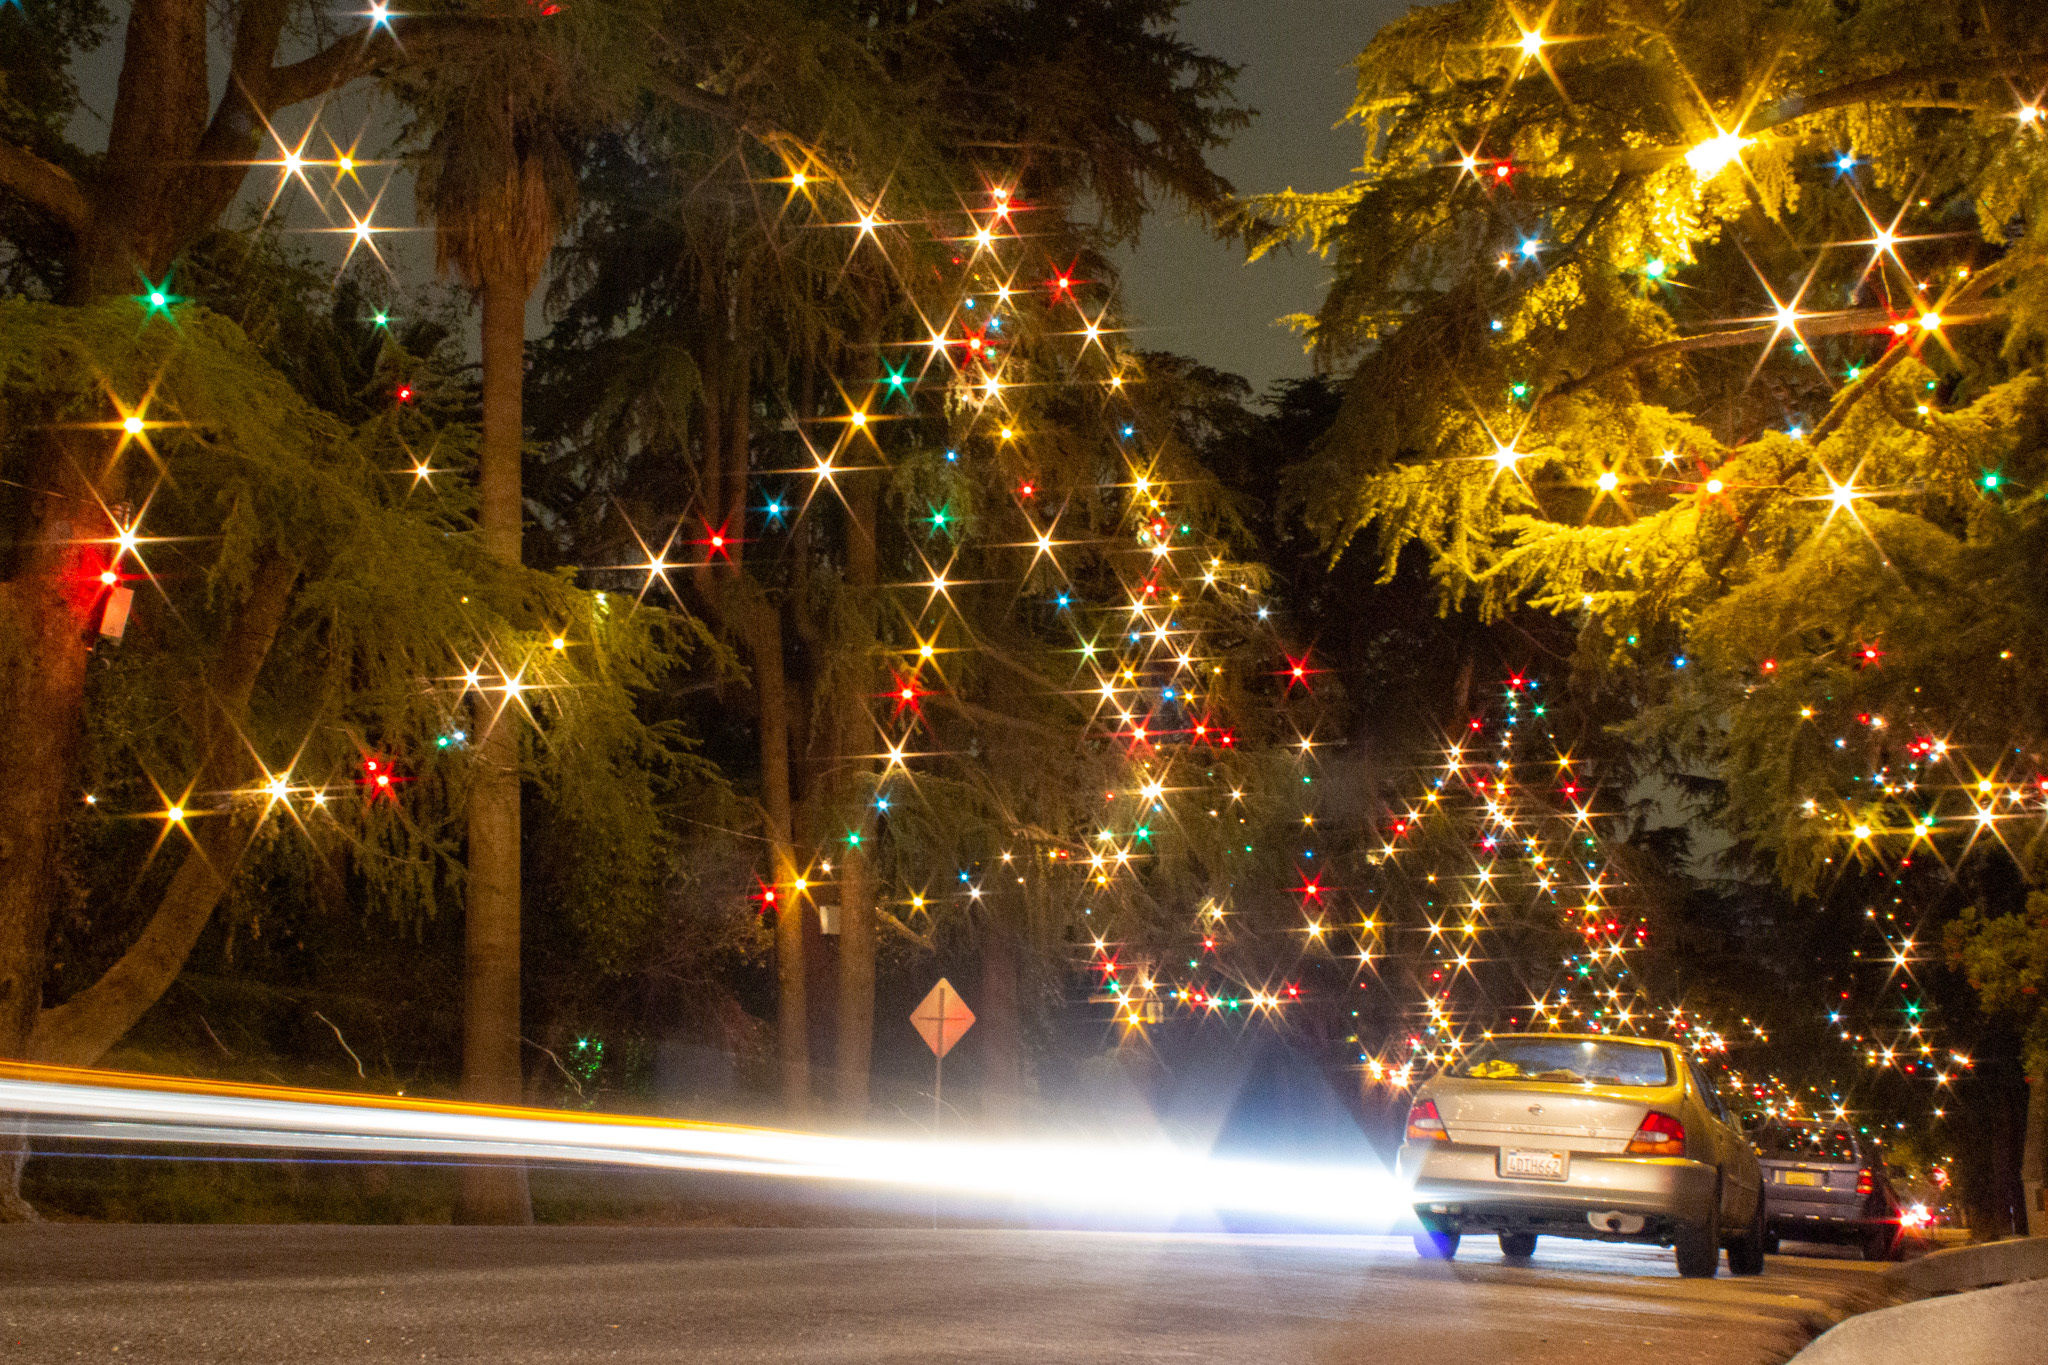 14 Best Places to See Christmas Lights in Los Angeles